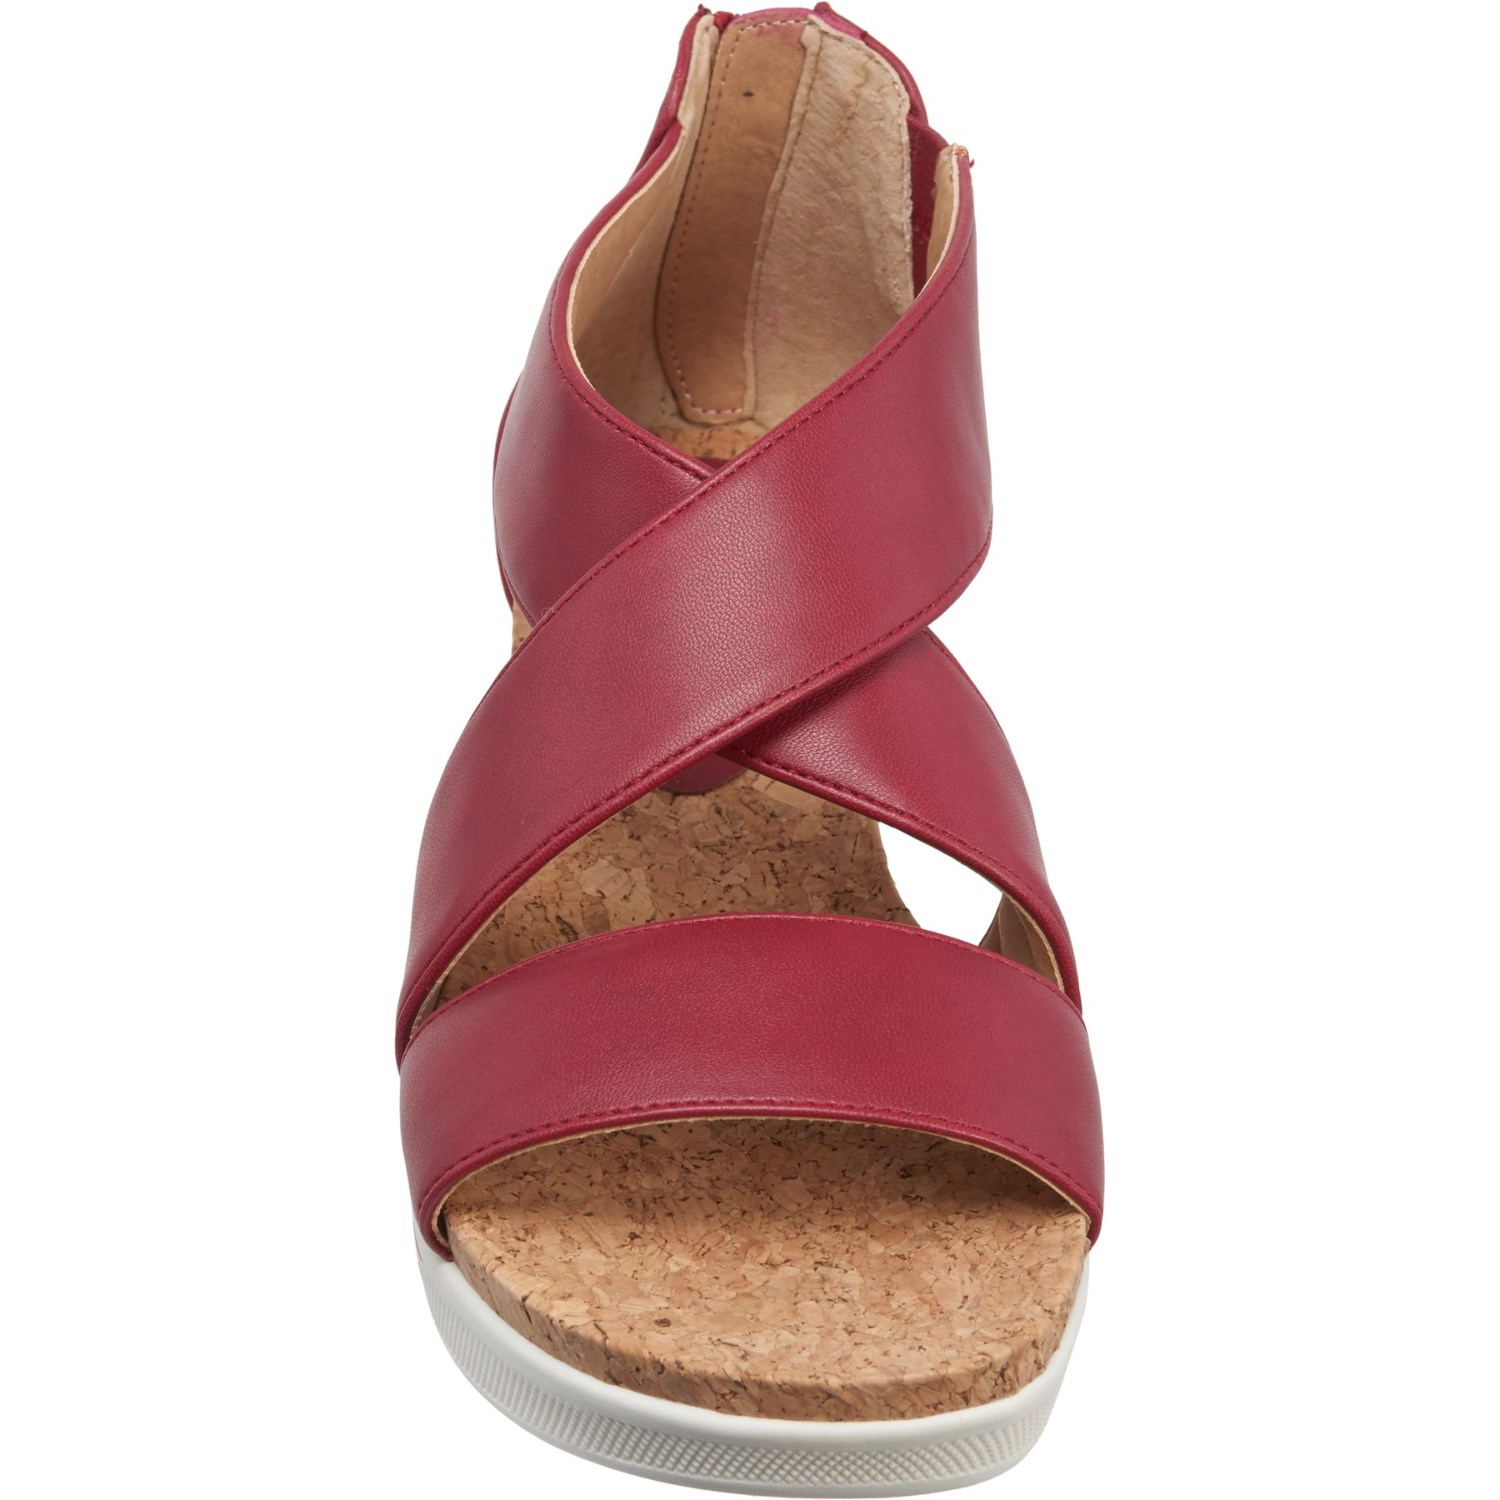 a6d7fc7981c Adrienne Vittadini Claud Sport Sandals (For Women) - Save 49%